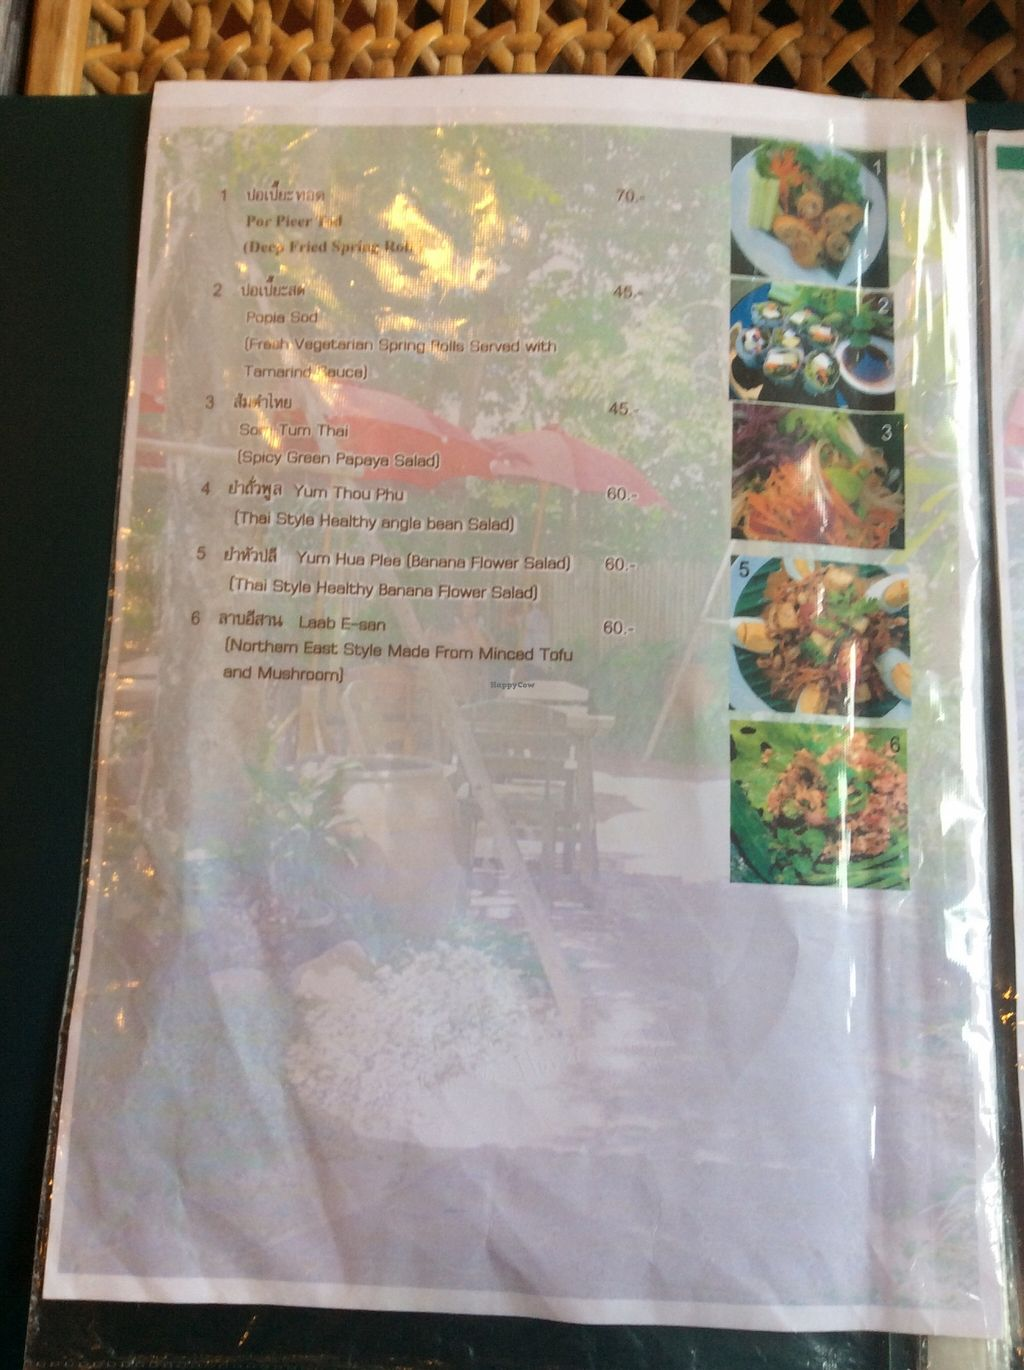 """Photo of Fuang Vegetarian  by <a href=""""/members/profile/samesamebutvegan"""">samesamebutvegan</a> <br/>salads and starters <br/> January 26, 2016  - <a href='/contact/abuse/image/40611/133822'>Report</a>"""